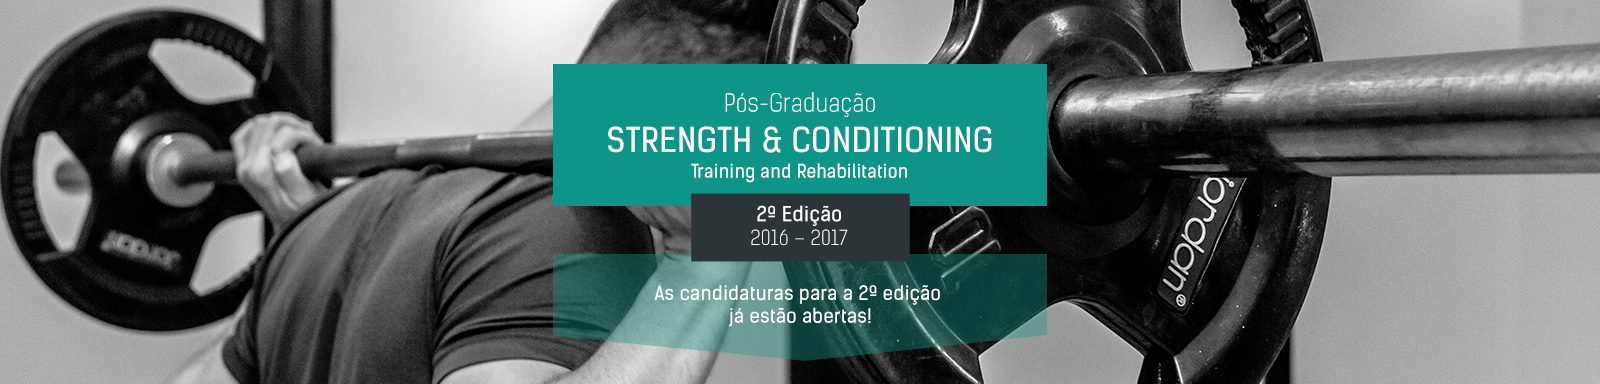 Pós-Graduação  STRENGTH & CONDITIONING